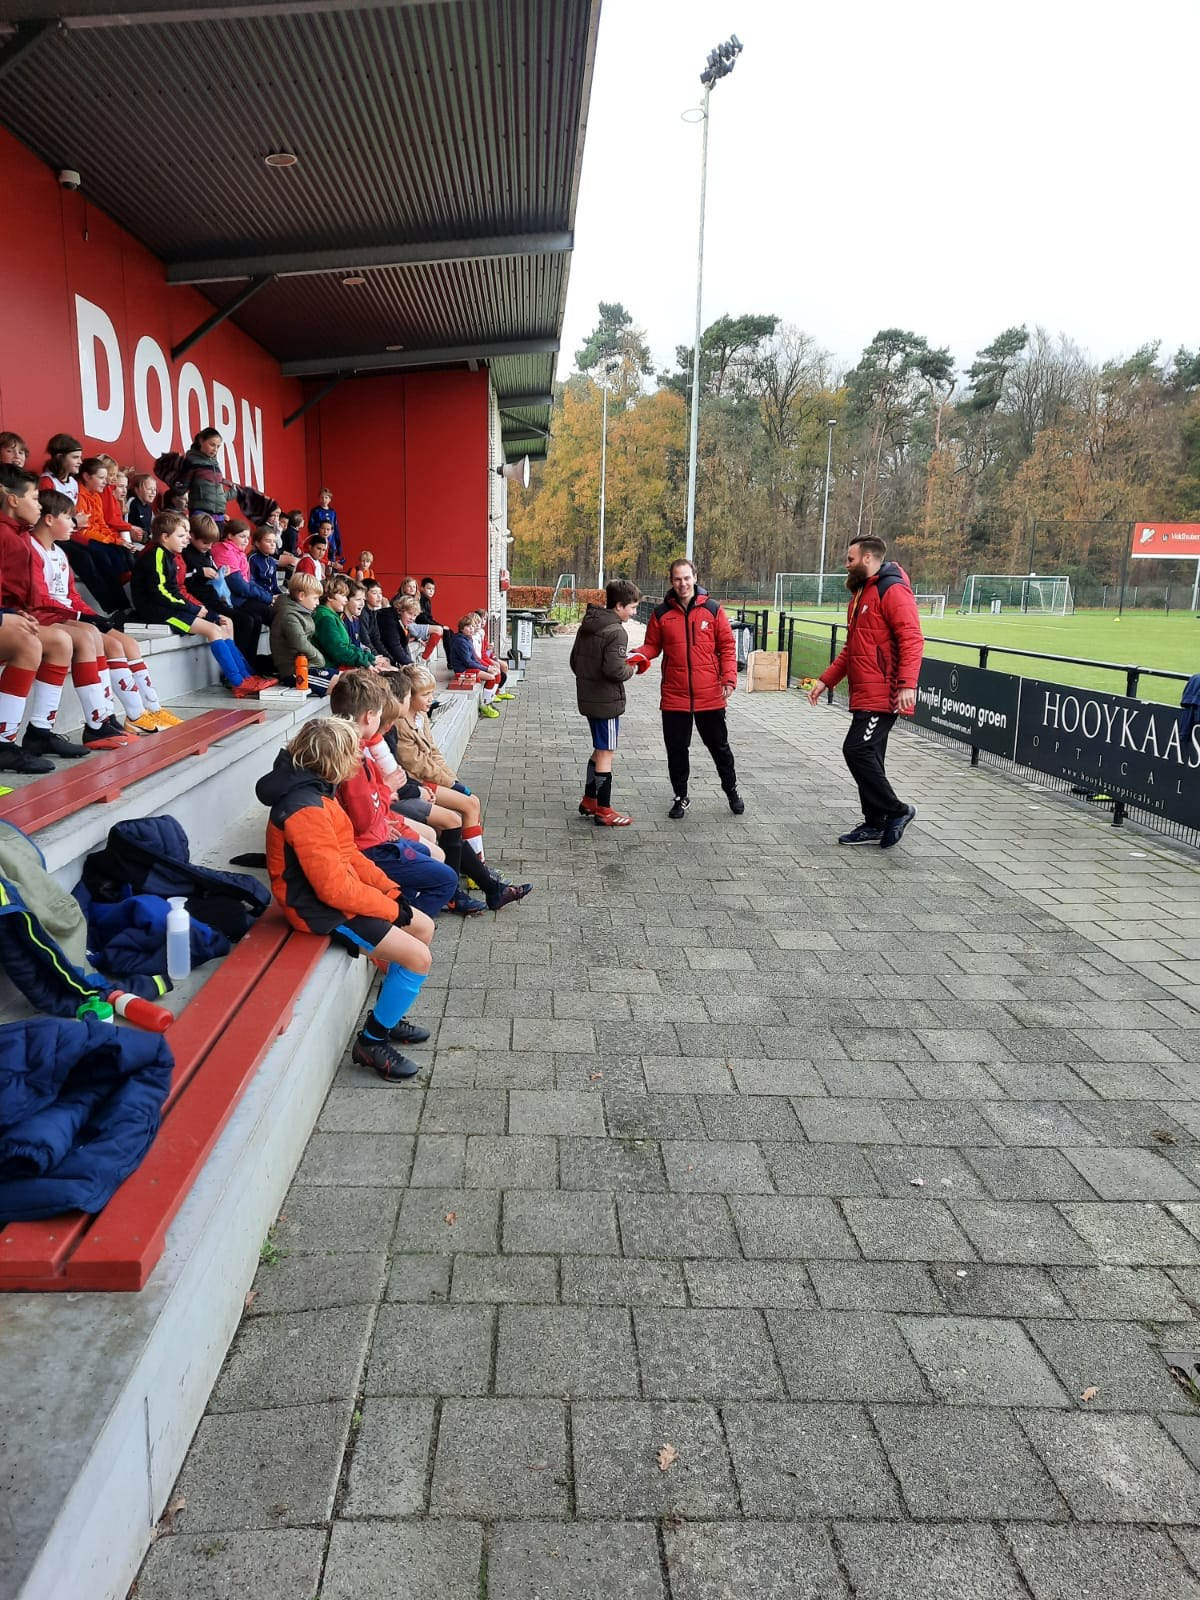 In Coronatijd: DEV Doorn Voetbalschool schot in de roos!